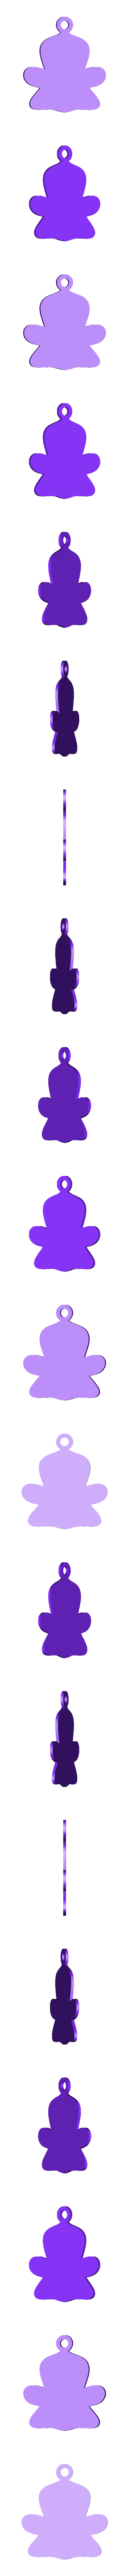 Pendant_Ghost_Back.stl Download STL file Ghost Pendant • 3D printable model, abbymath